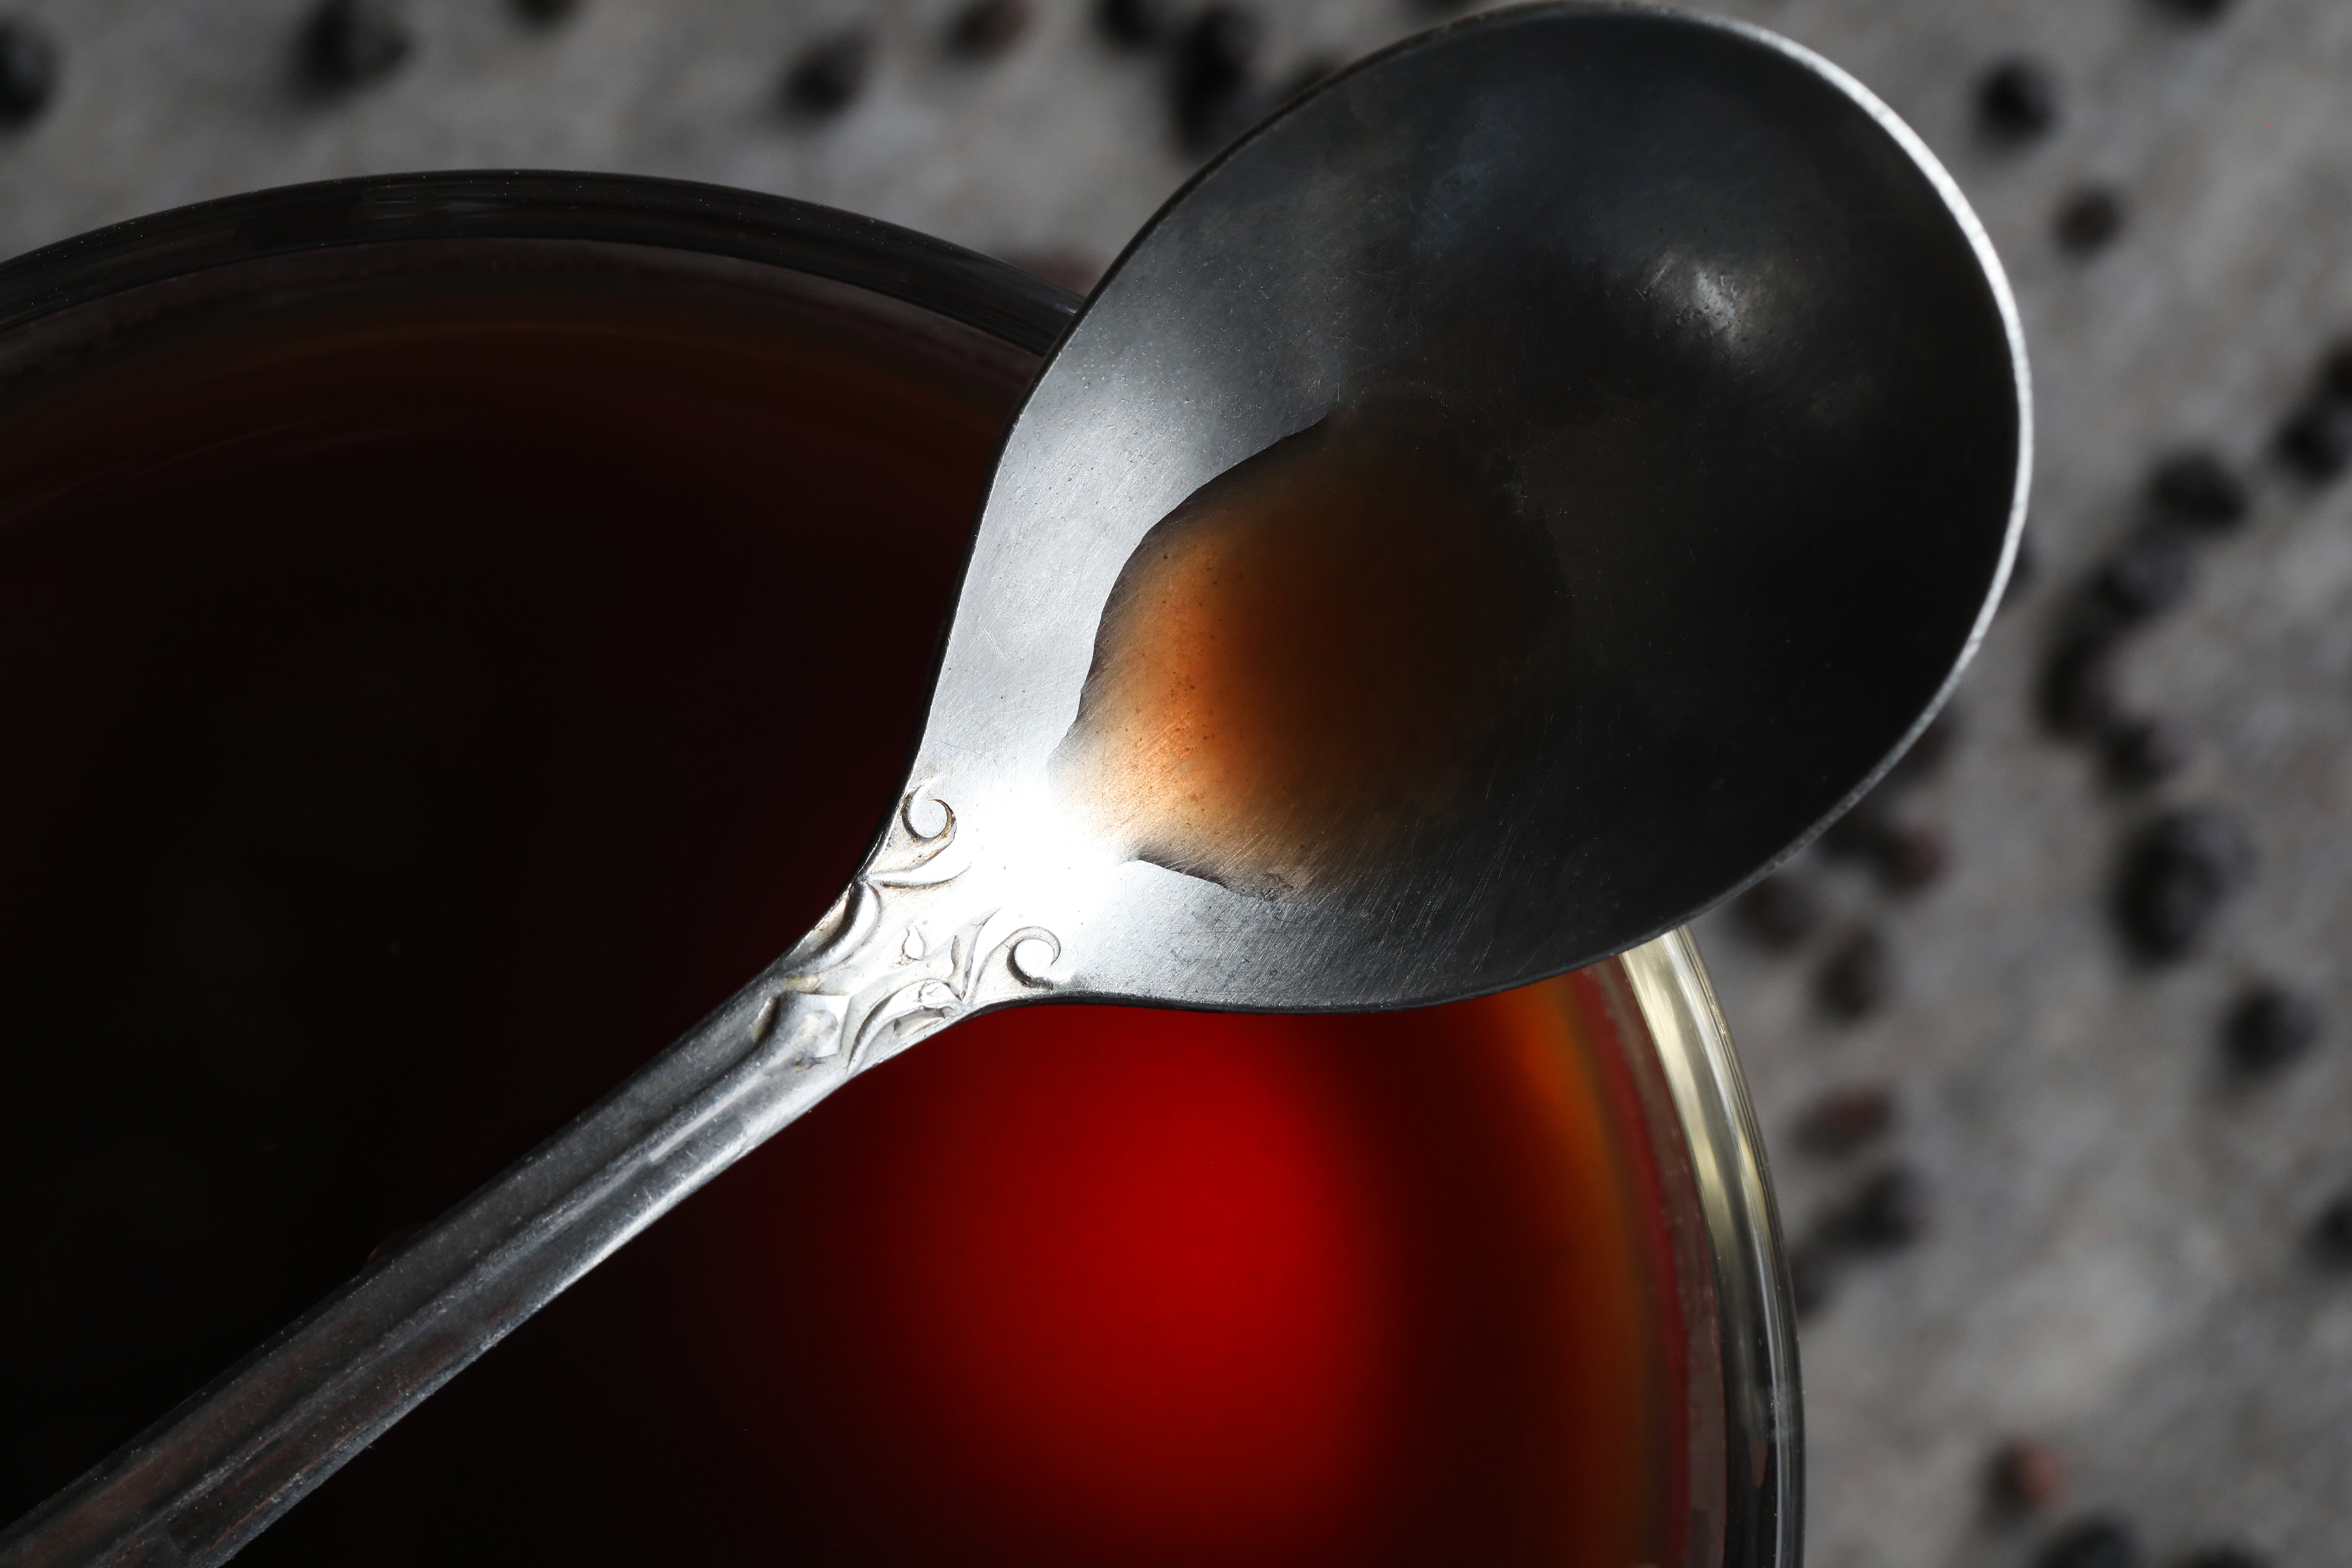 Metal spoon with small amount of deep red syrup.